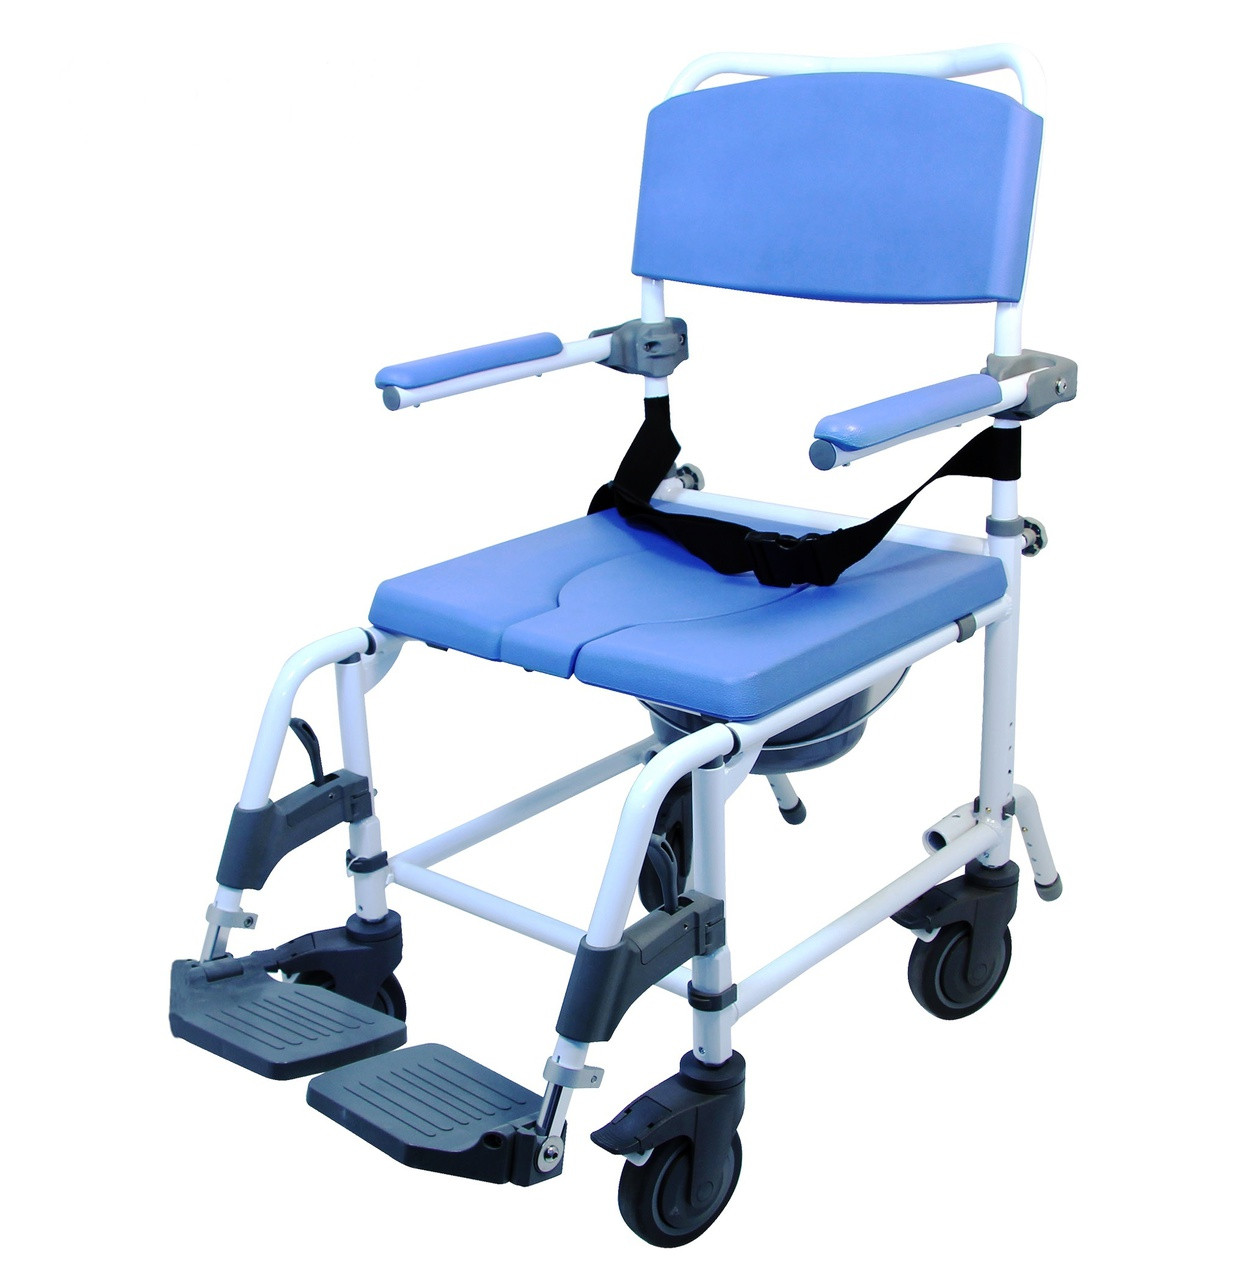 Shower Chair With Swivel Seat - CareProdx